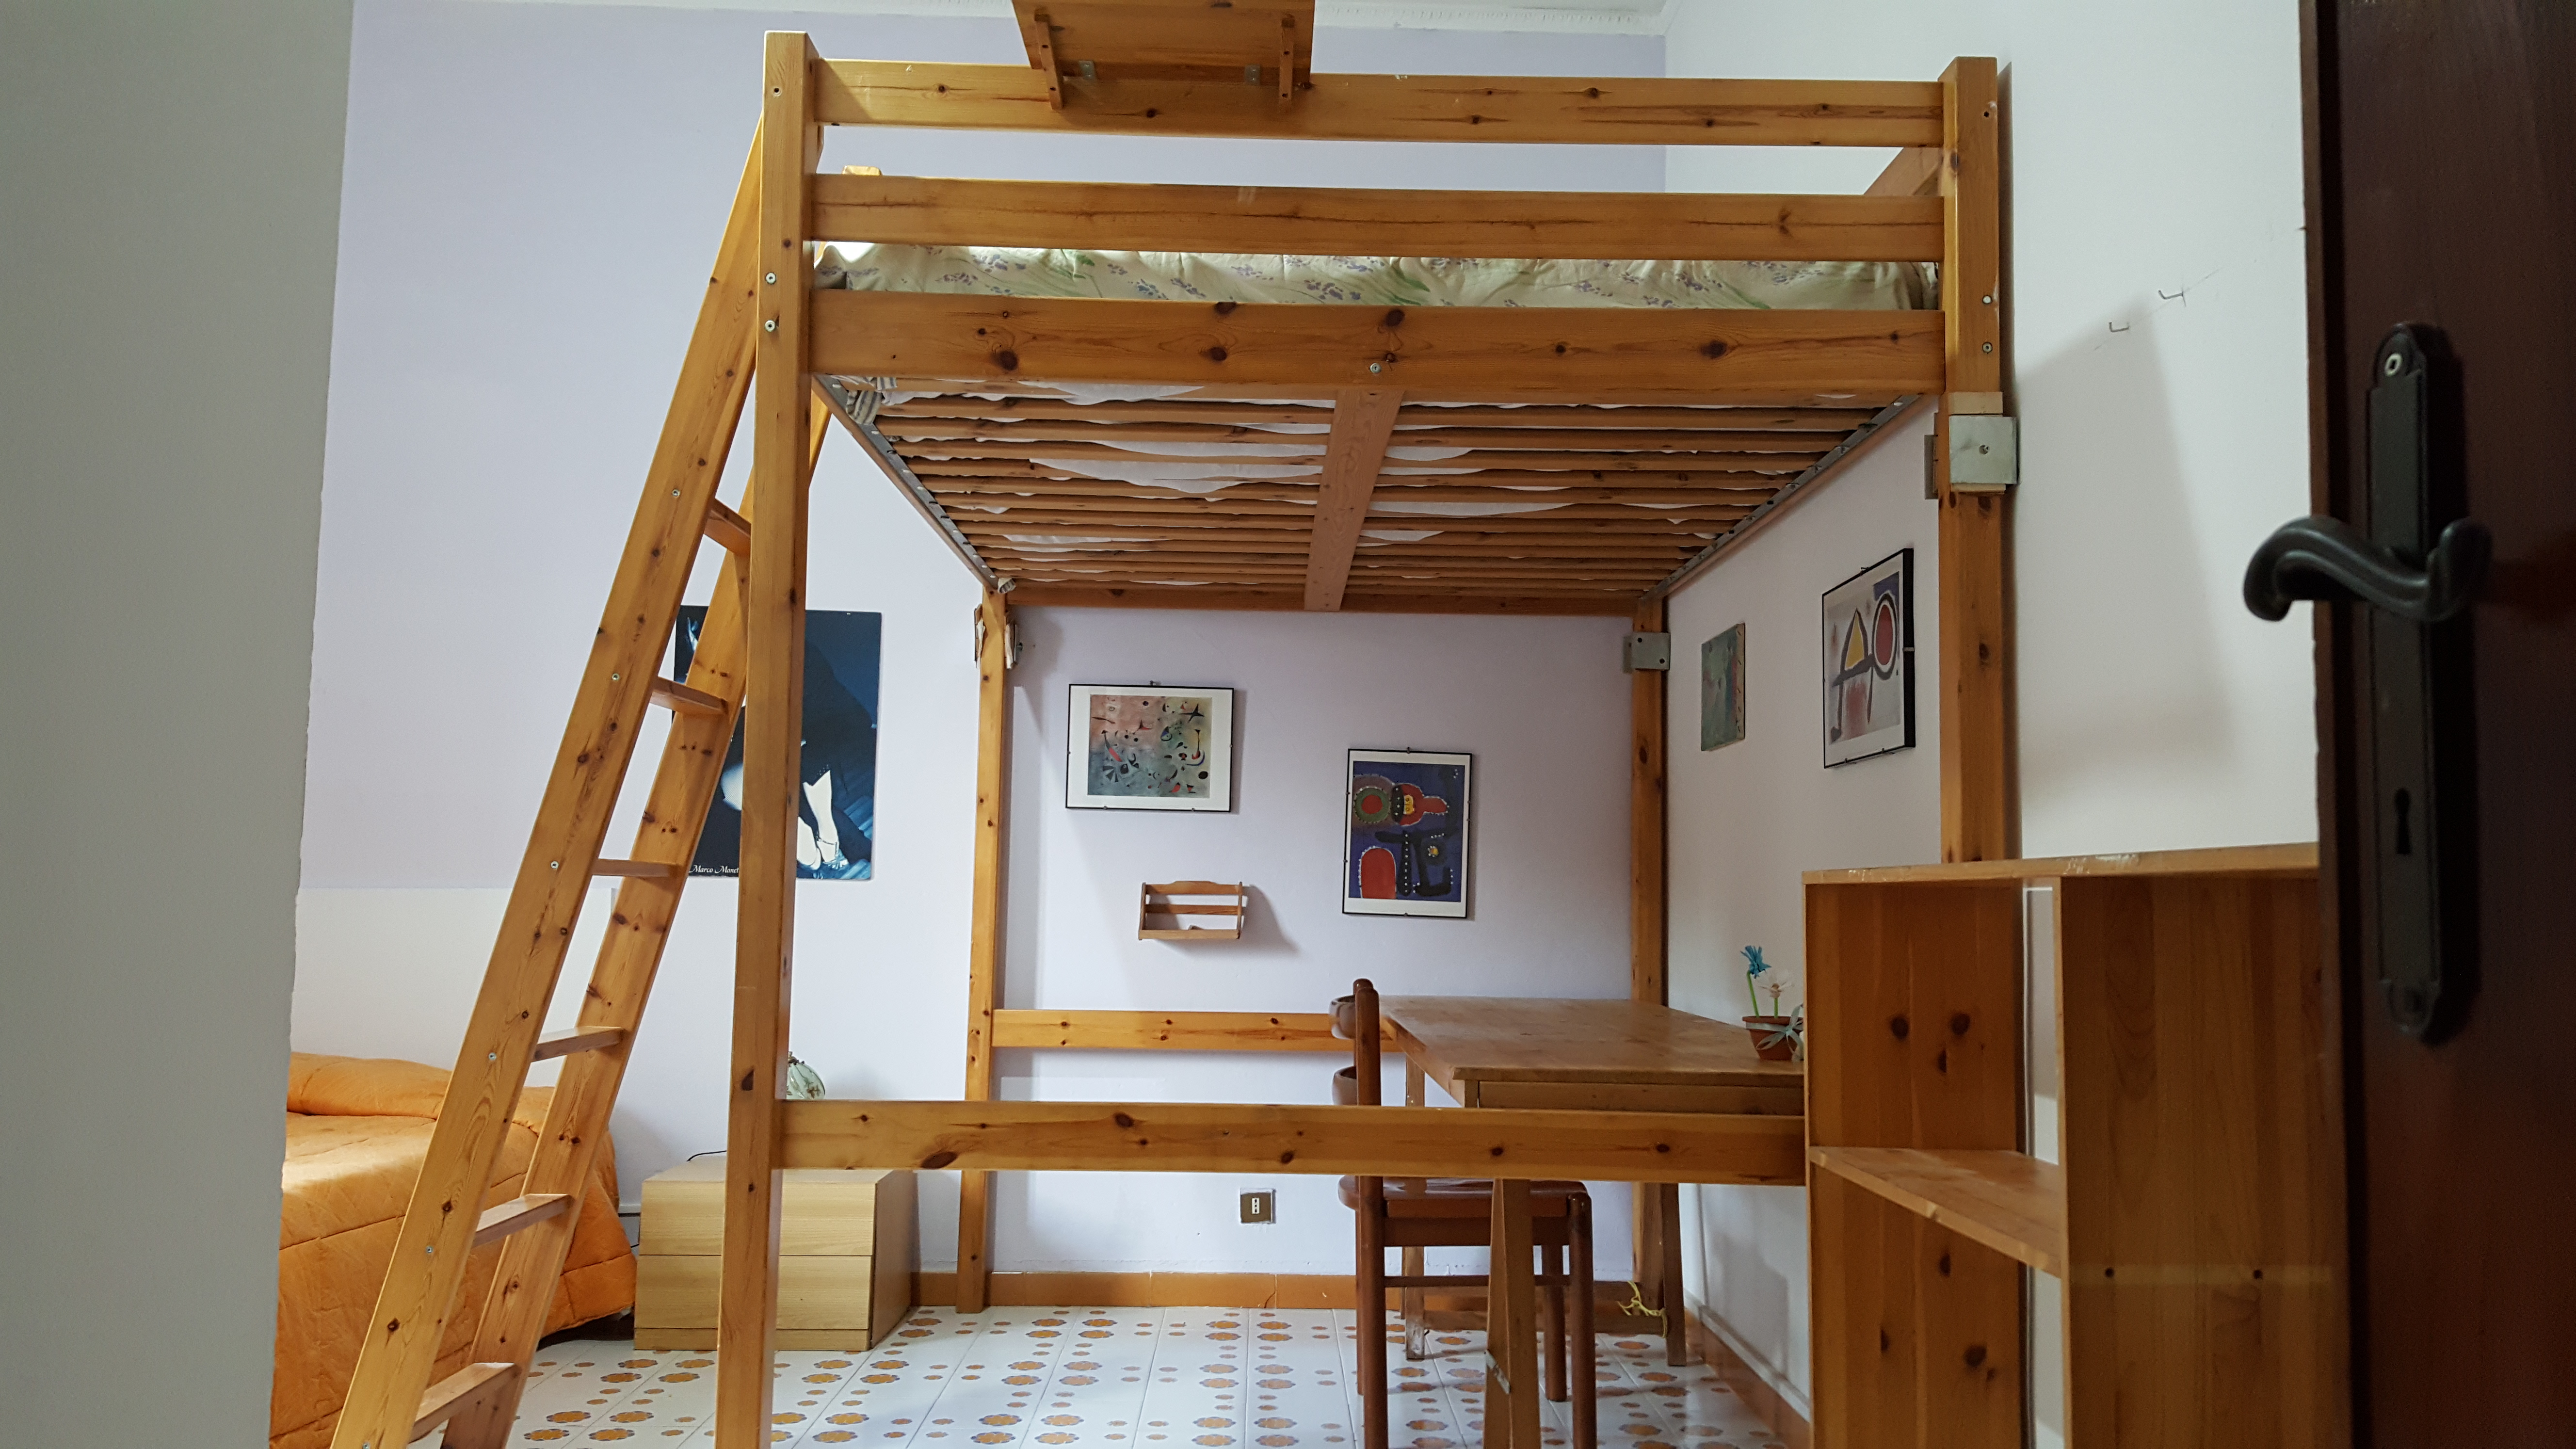 Camera Da Letto 4X4 mondello alloggio - apartments for rent in palermo, sicilia